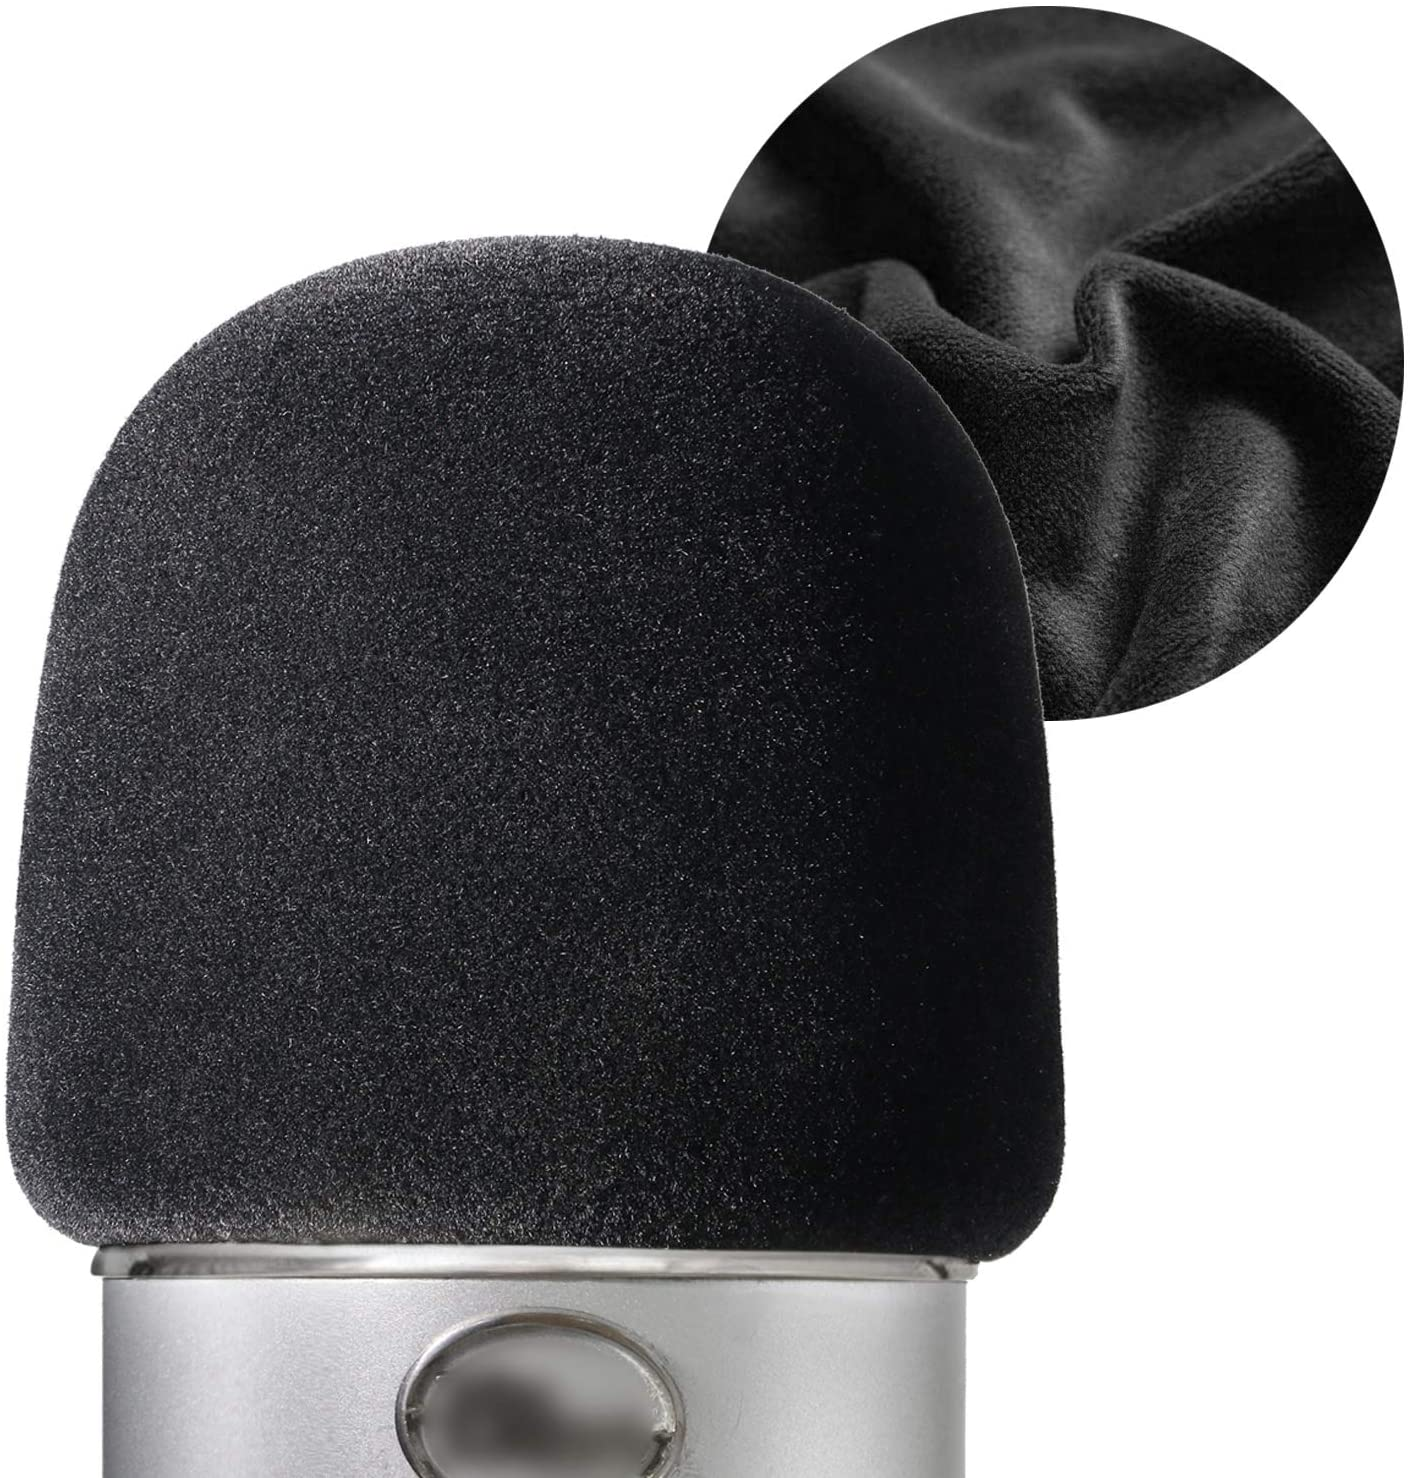 Flocked Foam Windscreen for Blue Yeti - Mic Cover Pop Filter with Flocking Surface for Blue Yeti, Yeti Pro Condenser Microphones by YOUSHARES